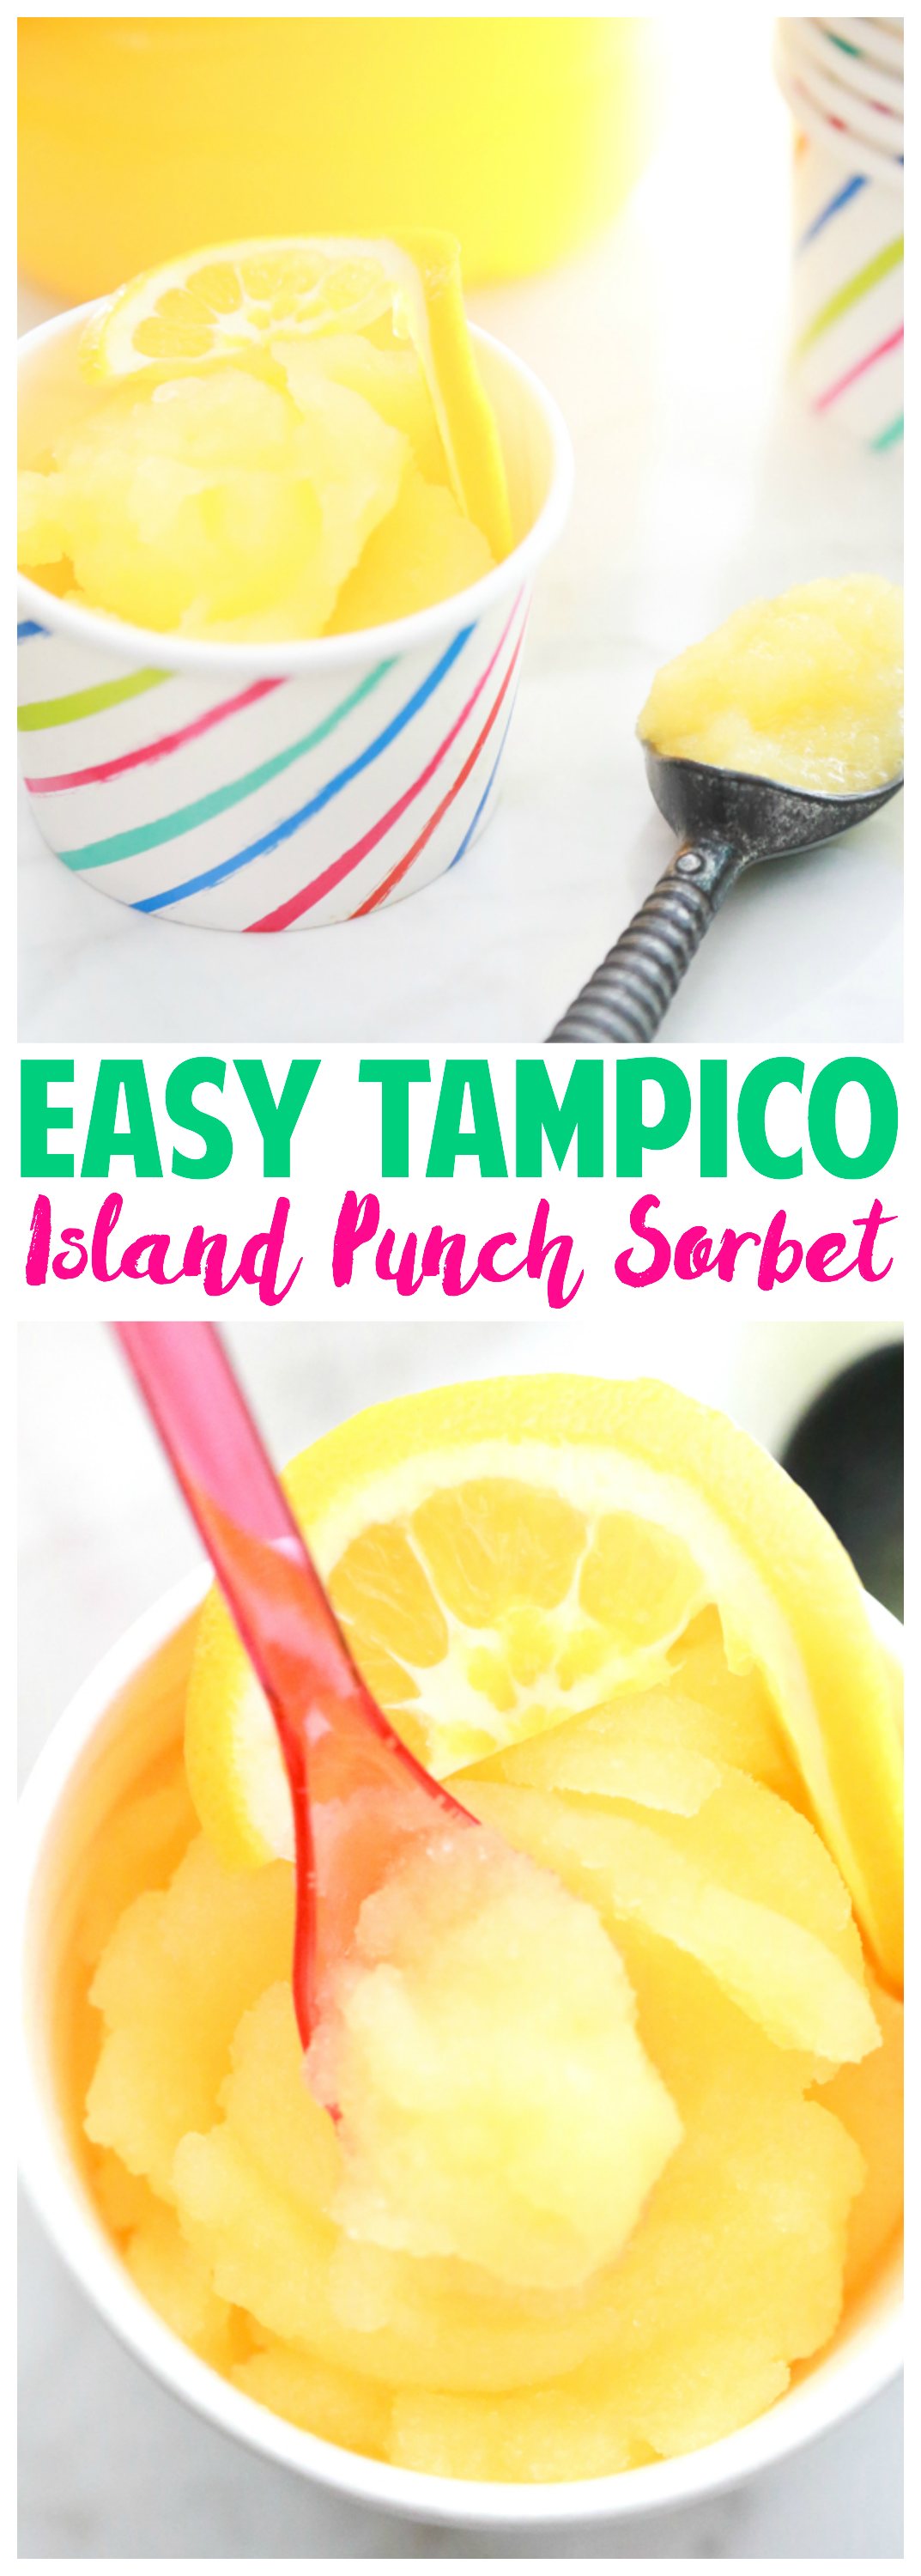 No ice cream maker needed for this one. Make this super Easy Tampico Island Punch Sorbet to enjoy during the hot days of summer.